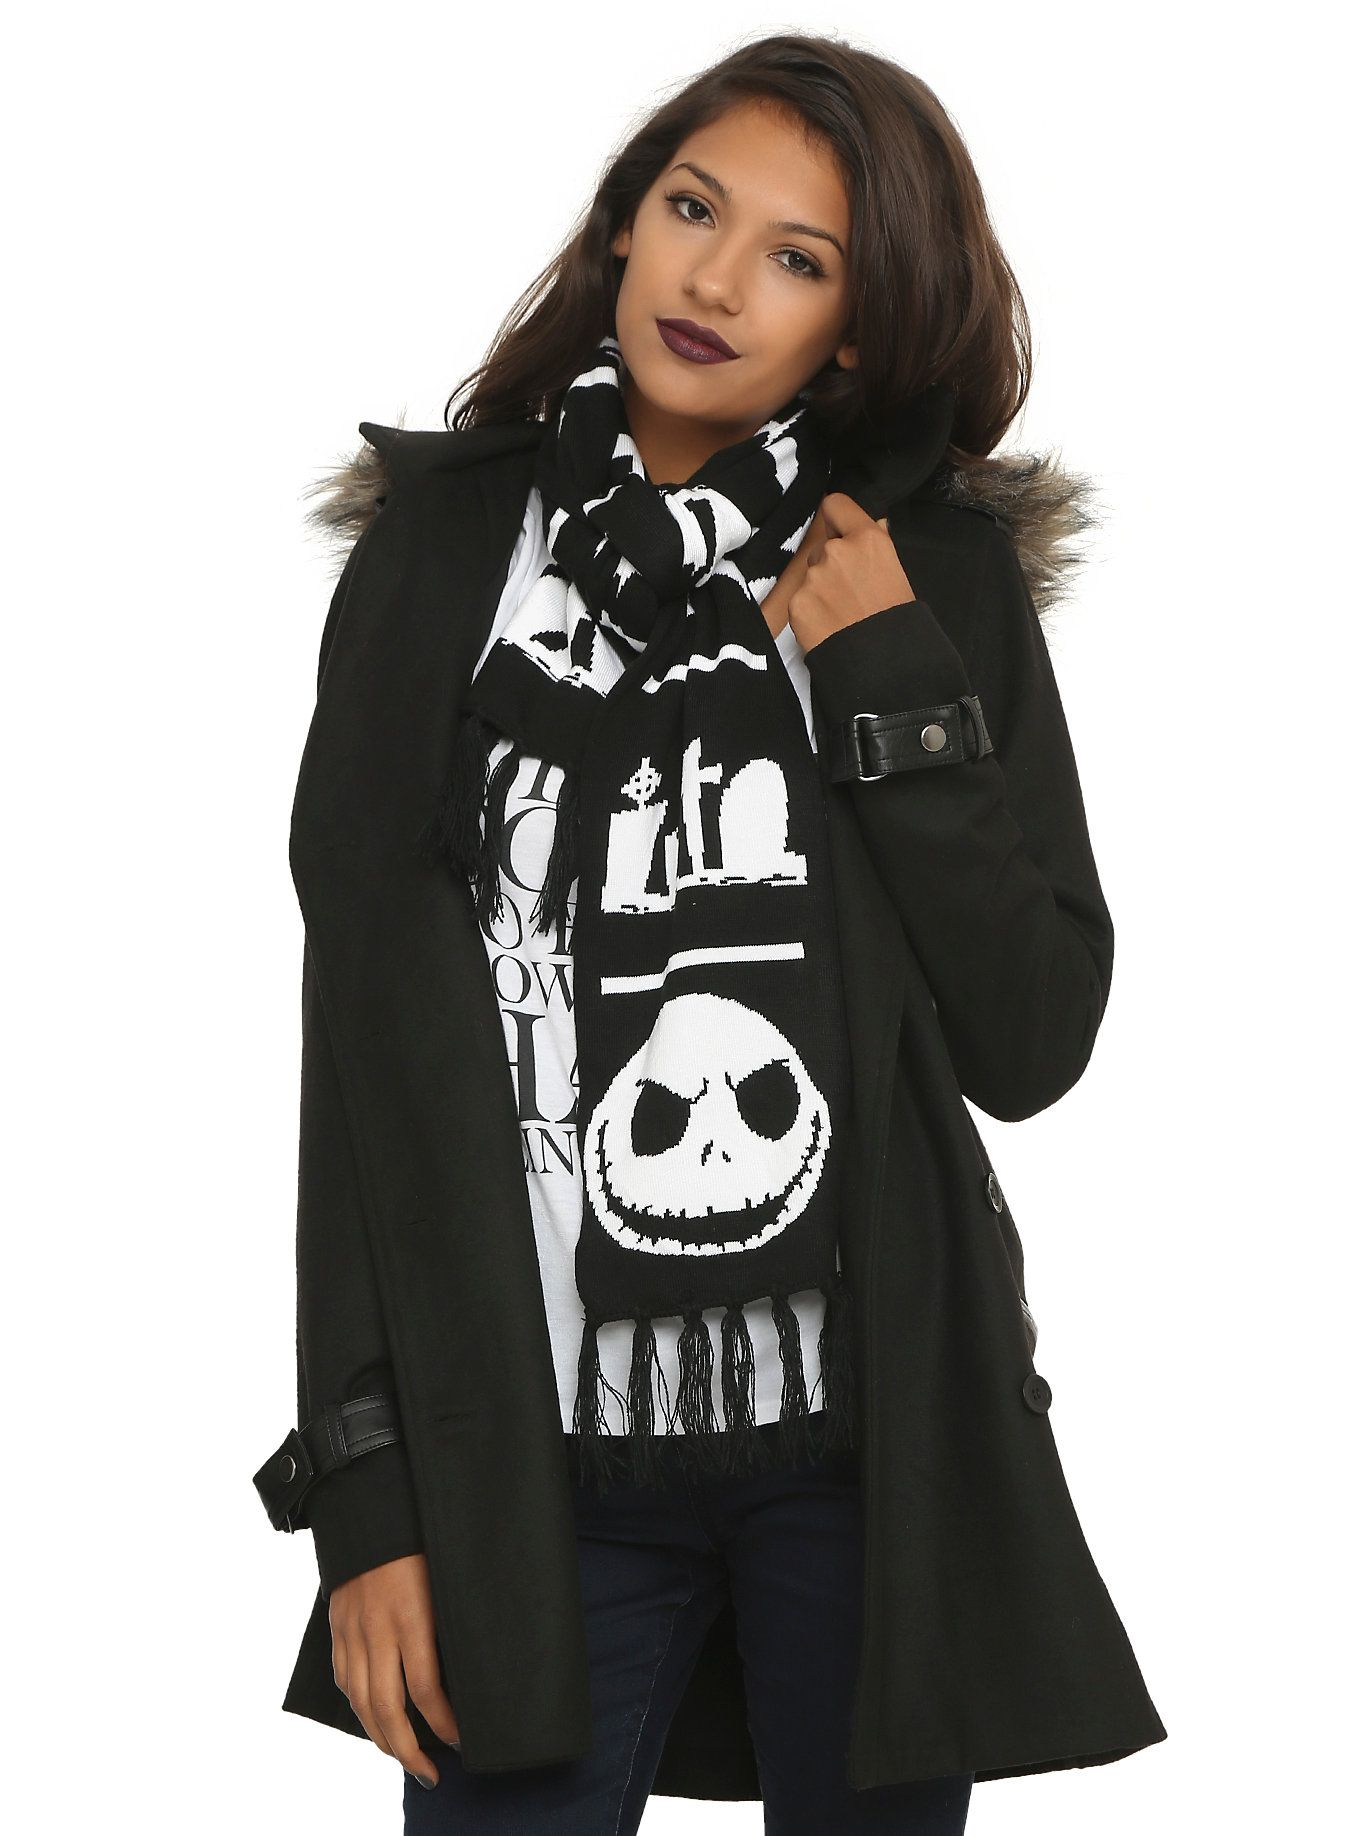 The Nightmare Before Christmas Knit Scarf